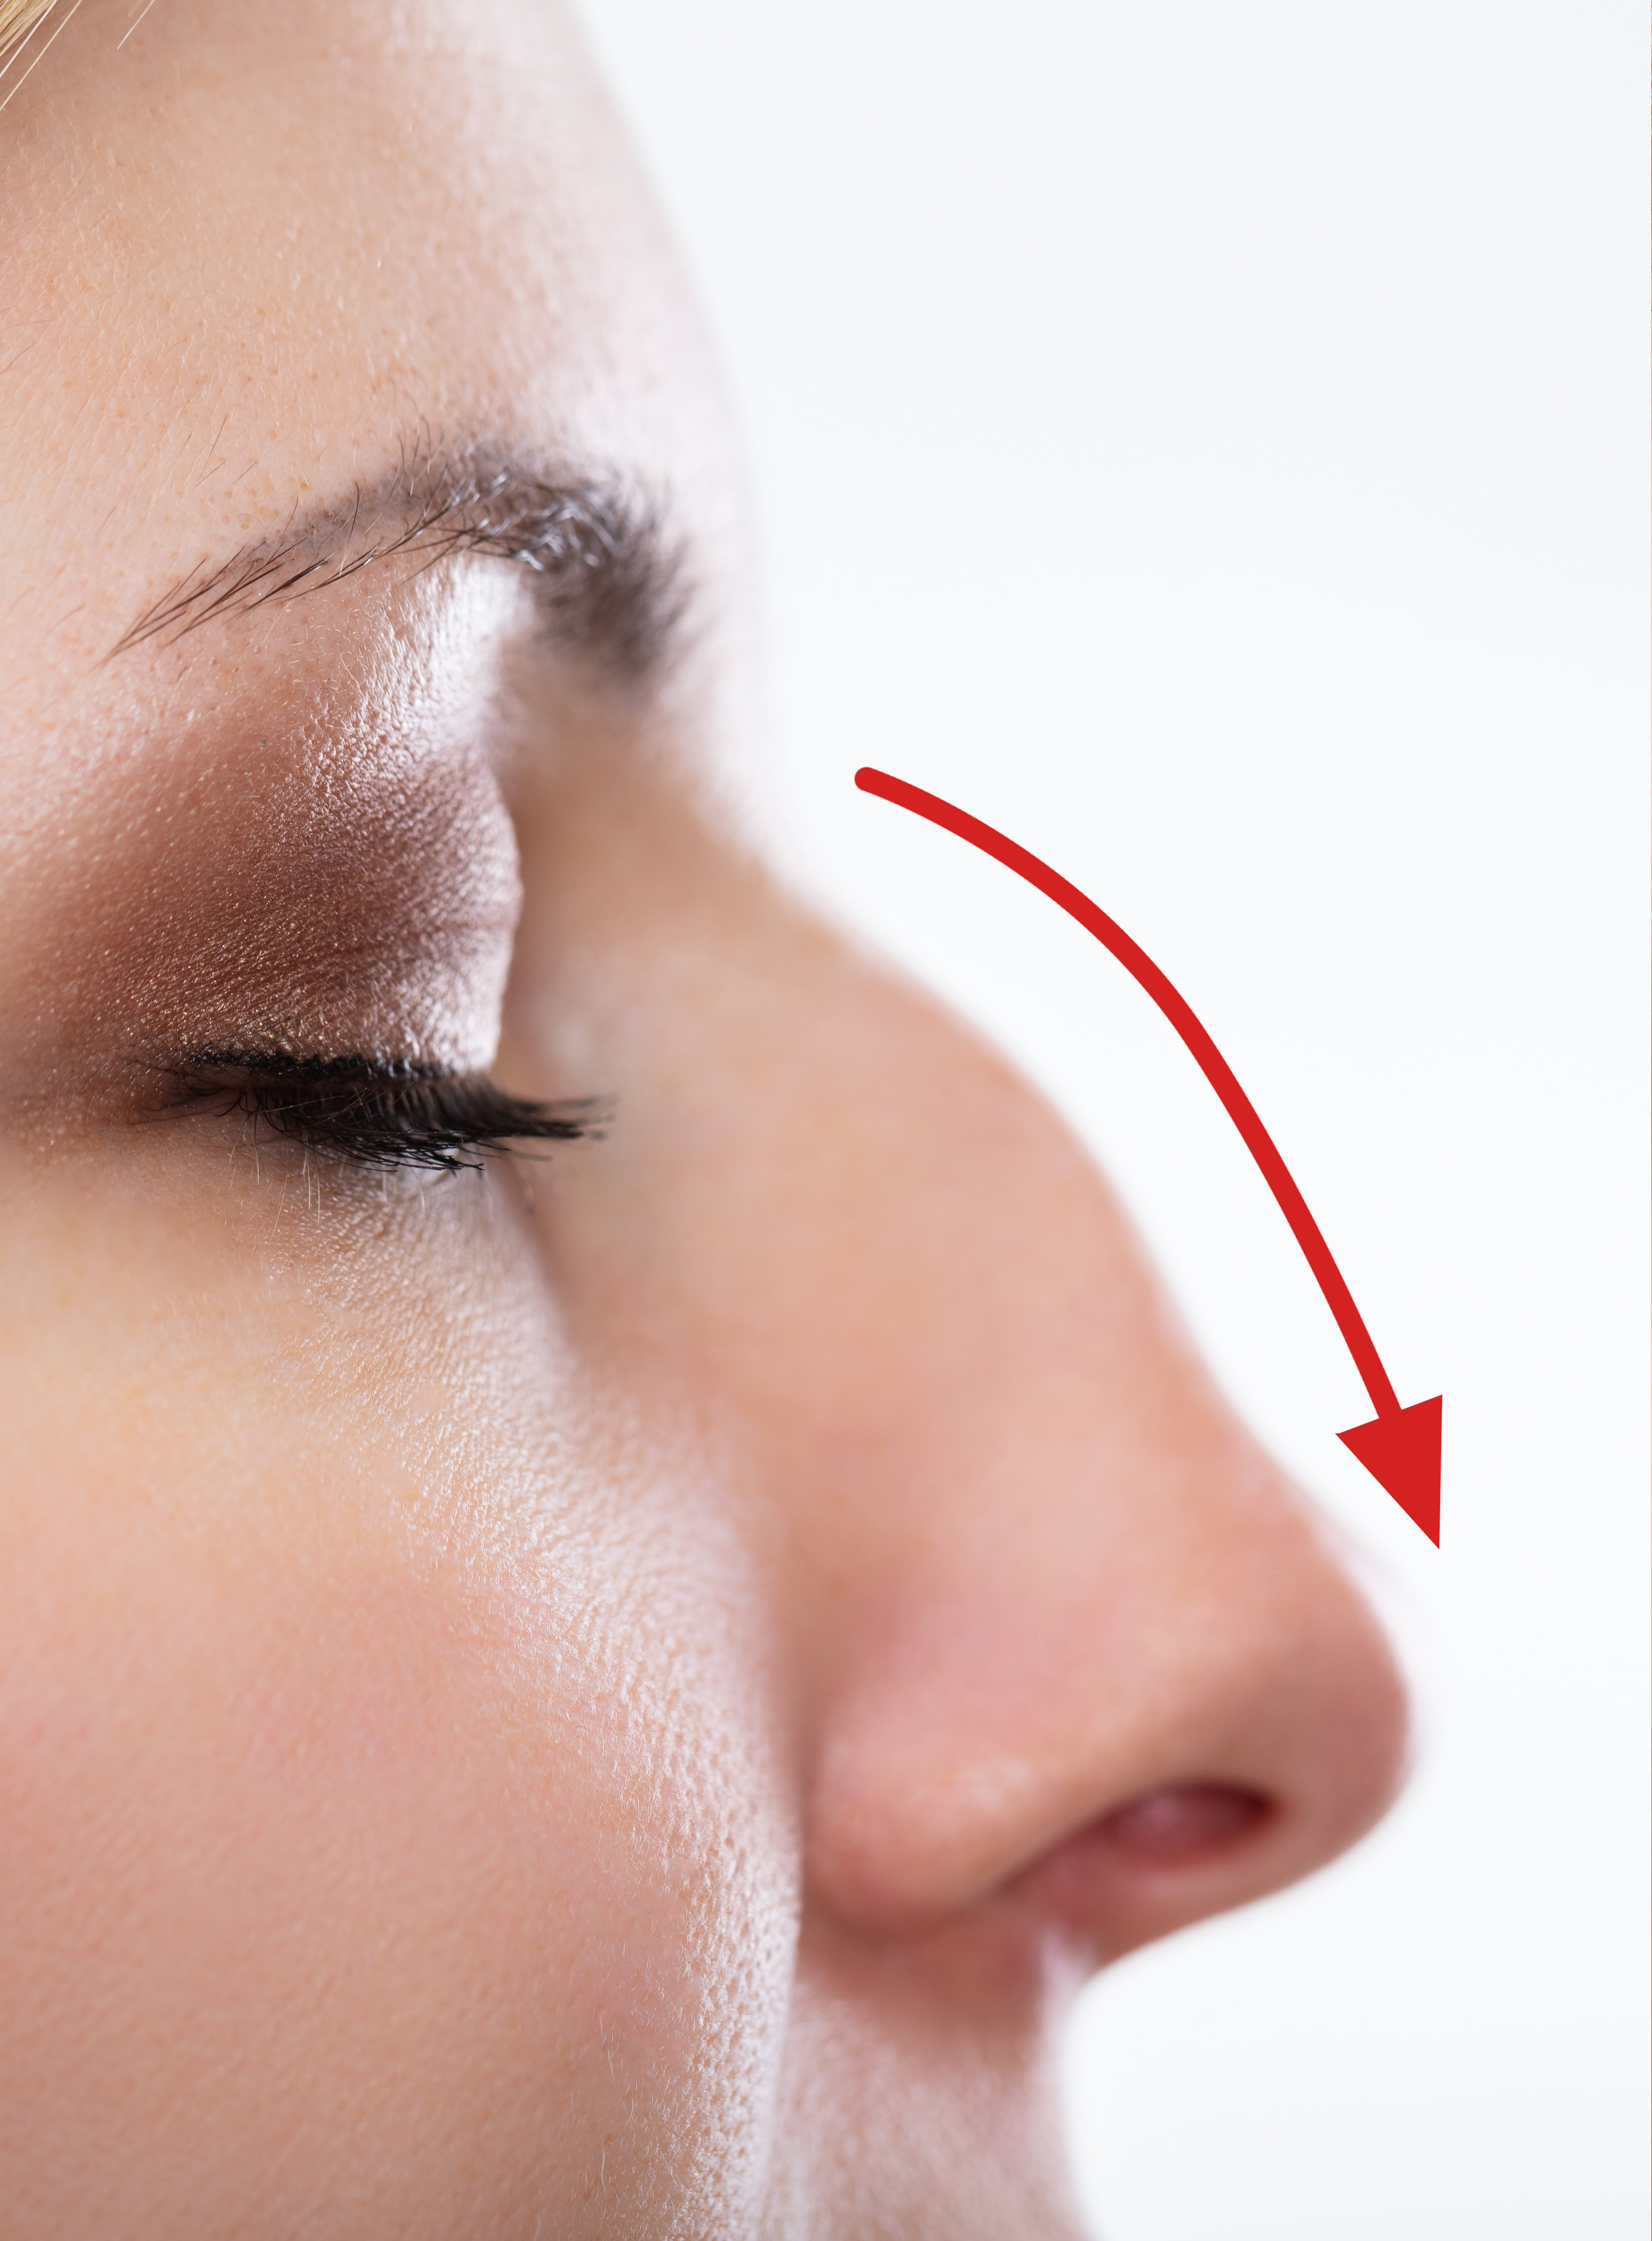 Hooked Nose Bump on Nose Treatment - Non Surgical Cosmetic